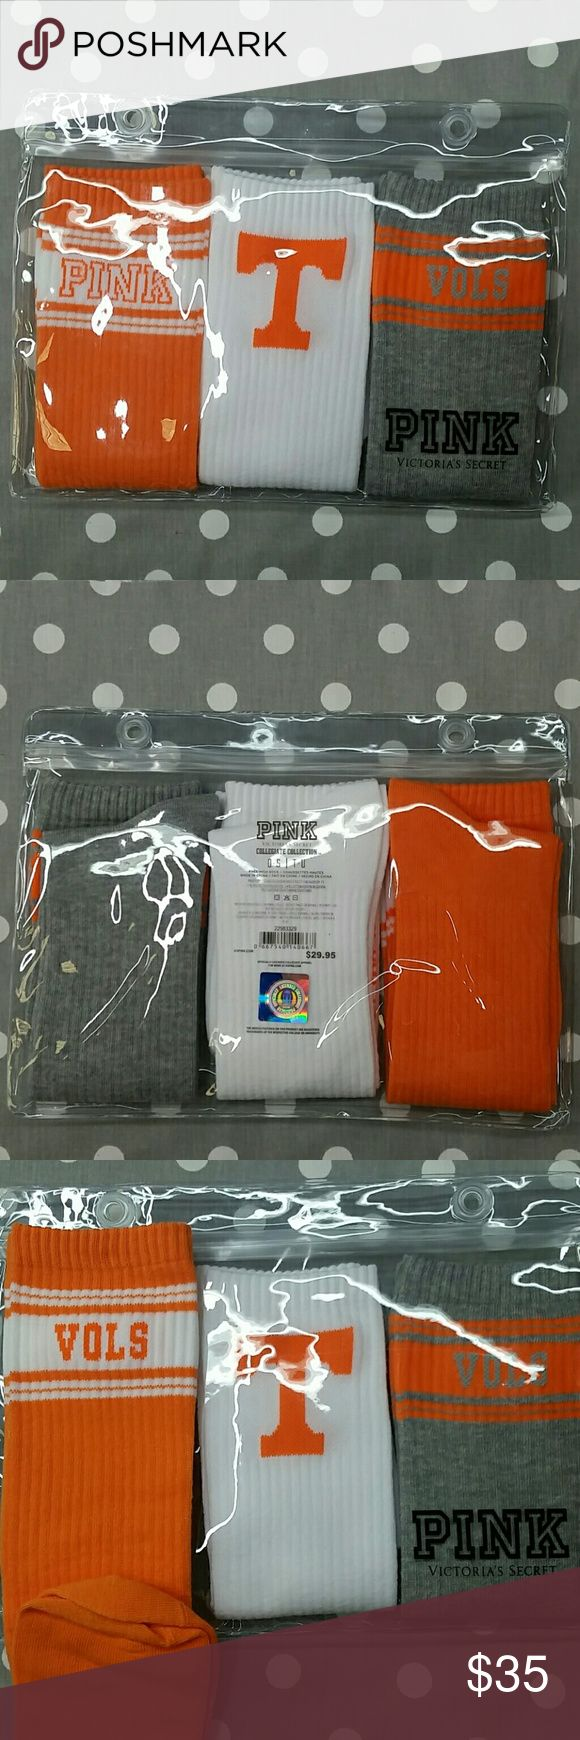 "PINK University of Tennessee Vols Knee High Socks There are three pairs of knee high socks inside of a reusable plastic pouch. They are orange, white, and gray. The orange and gray socks have ""PINK"" and ""VOLS"" (Volunteers) at the top, and the white pair has the ""T"" (for Tennessee or UT) at the top. The sticker on the back of the pouch can be removed and is just a clear pouch with the PINK logo on the bottom corner. They're part of PINK's Collegiate Collection for the University of Tennessee…"